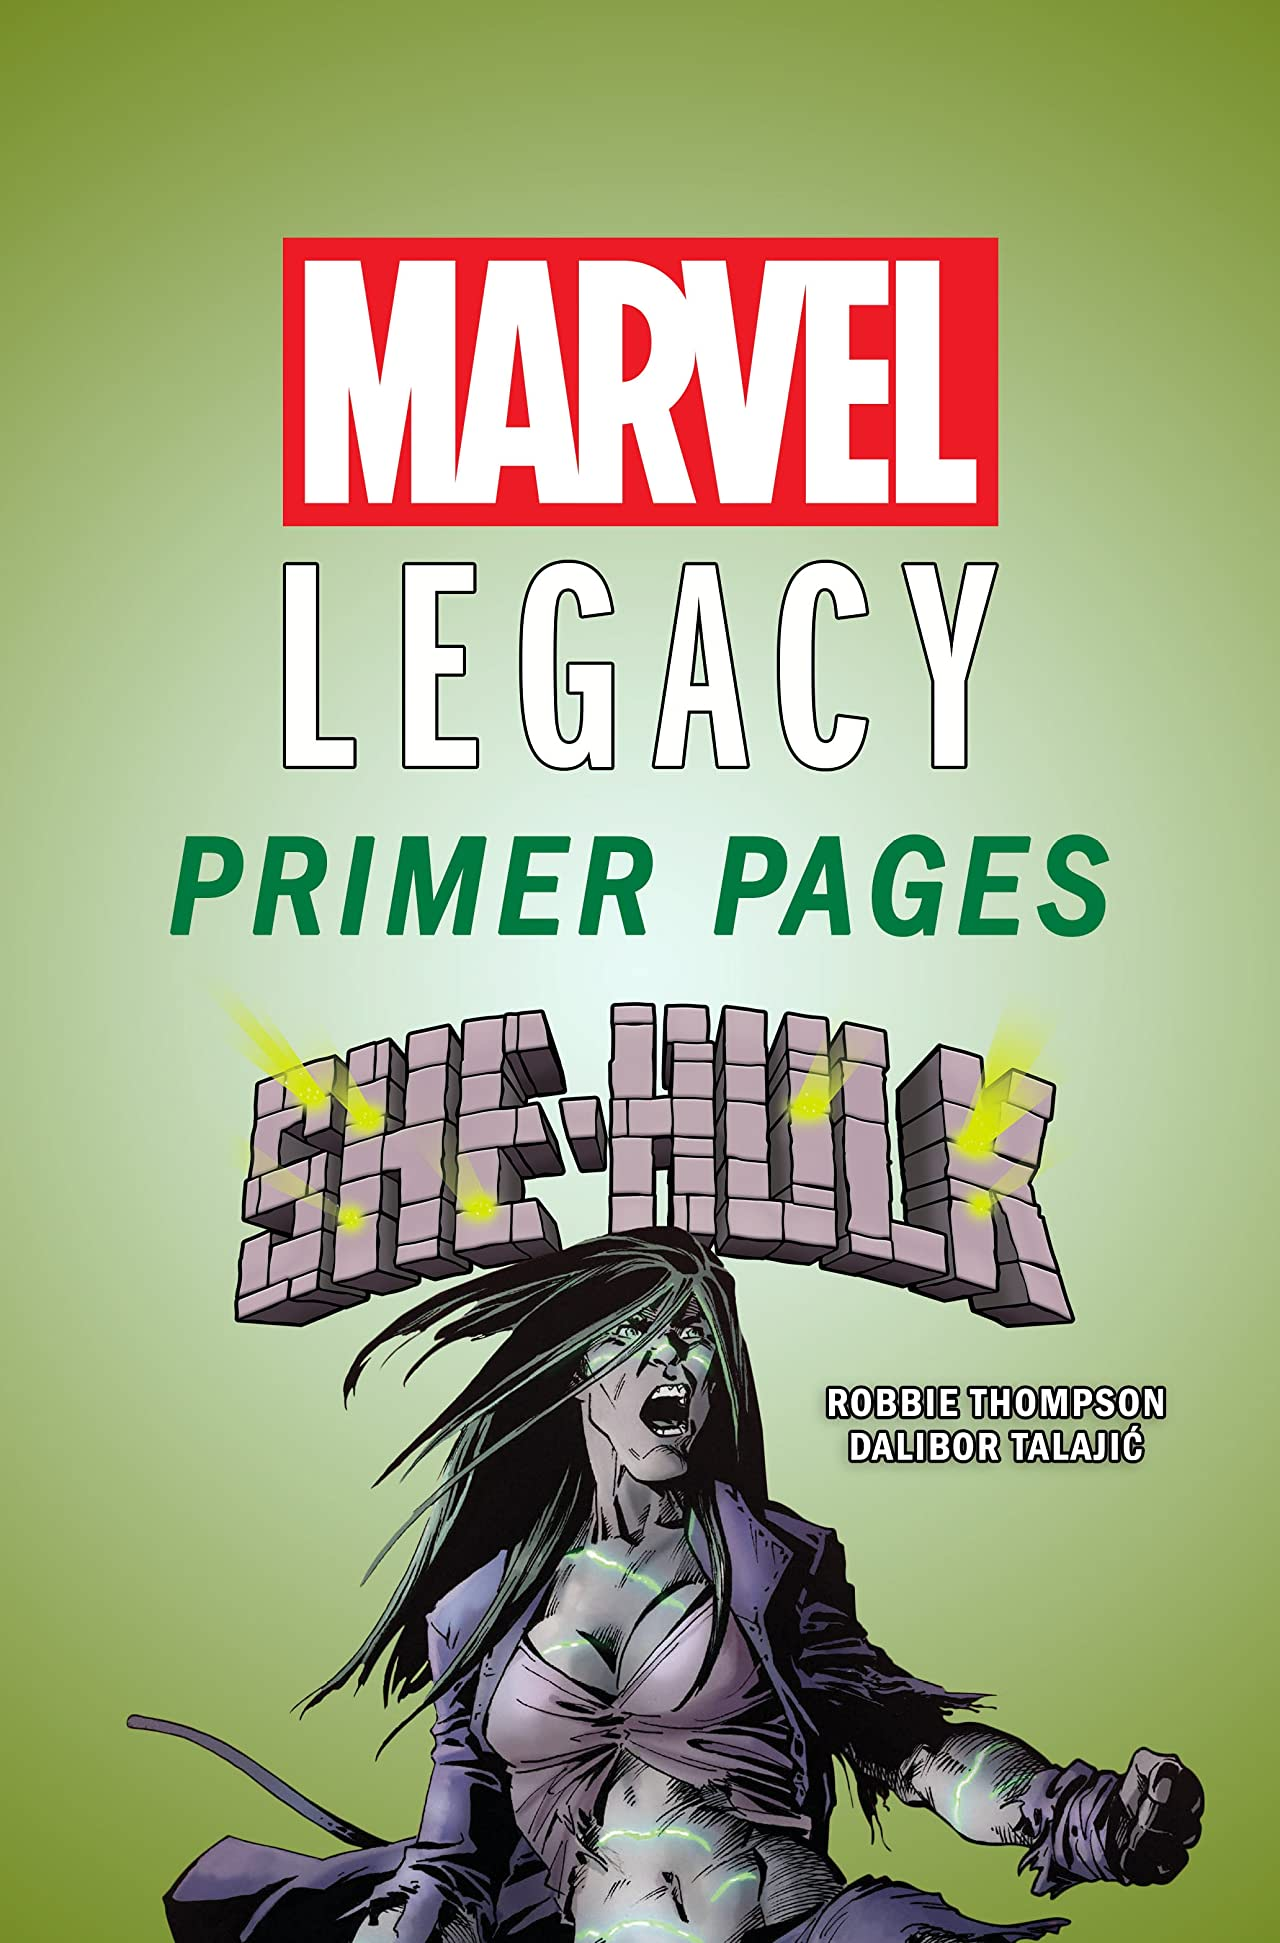 She-Hulk - Marvel Legacy Primer Pages